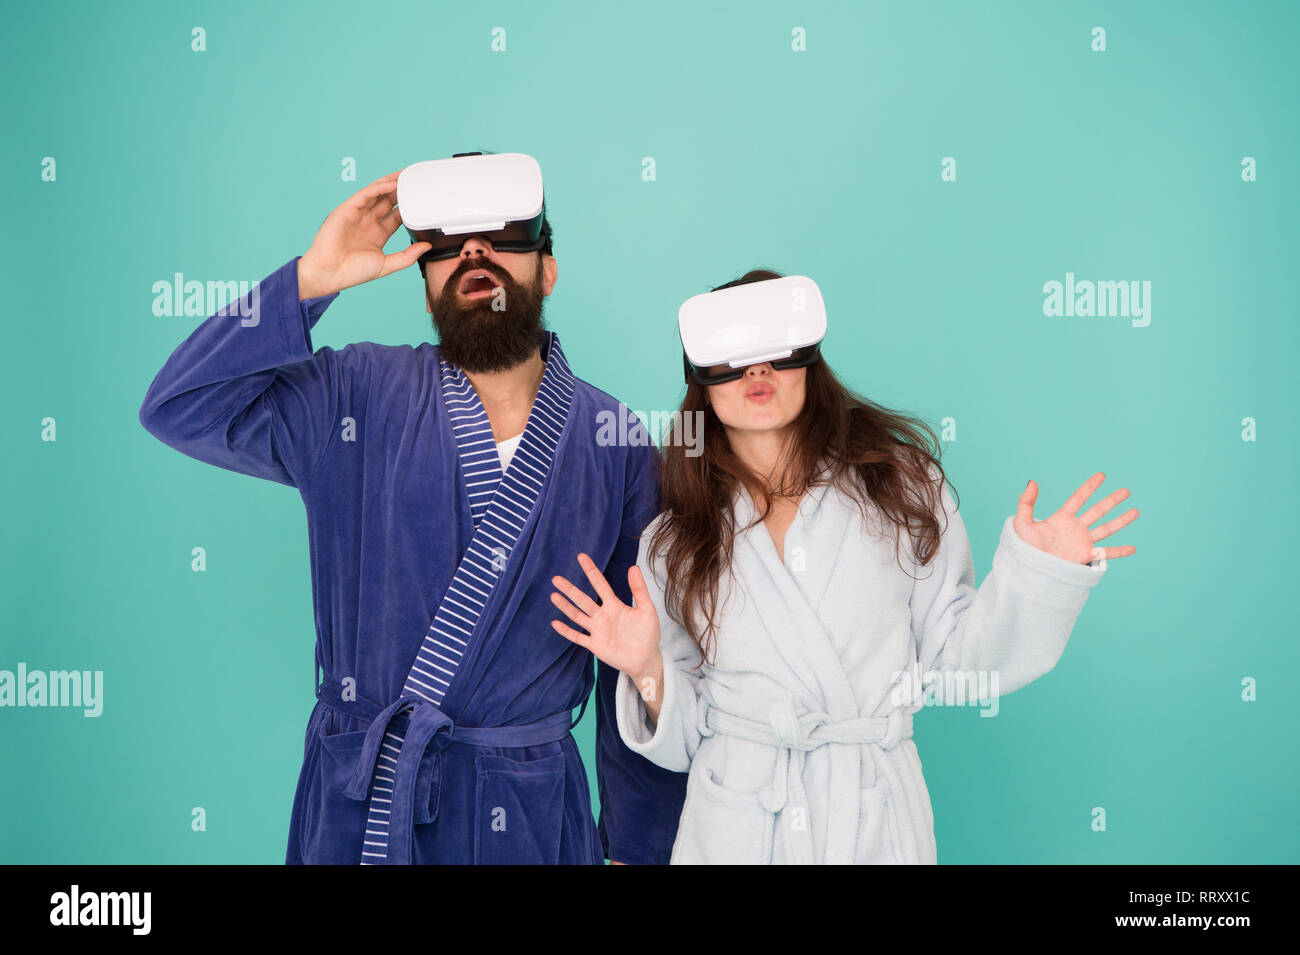 a274e2b87940 Virtual reality. Love. Good morning. surprised family in vr glasses. Couple  in